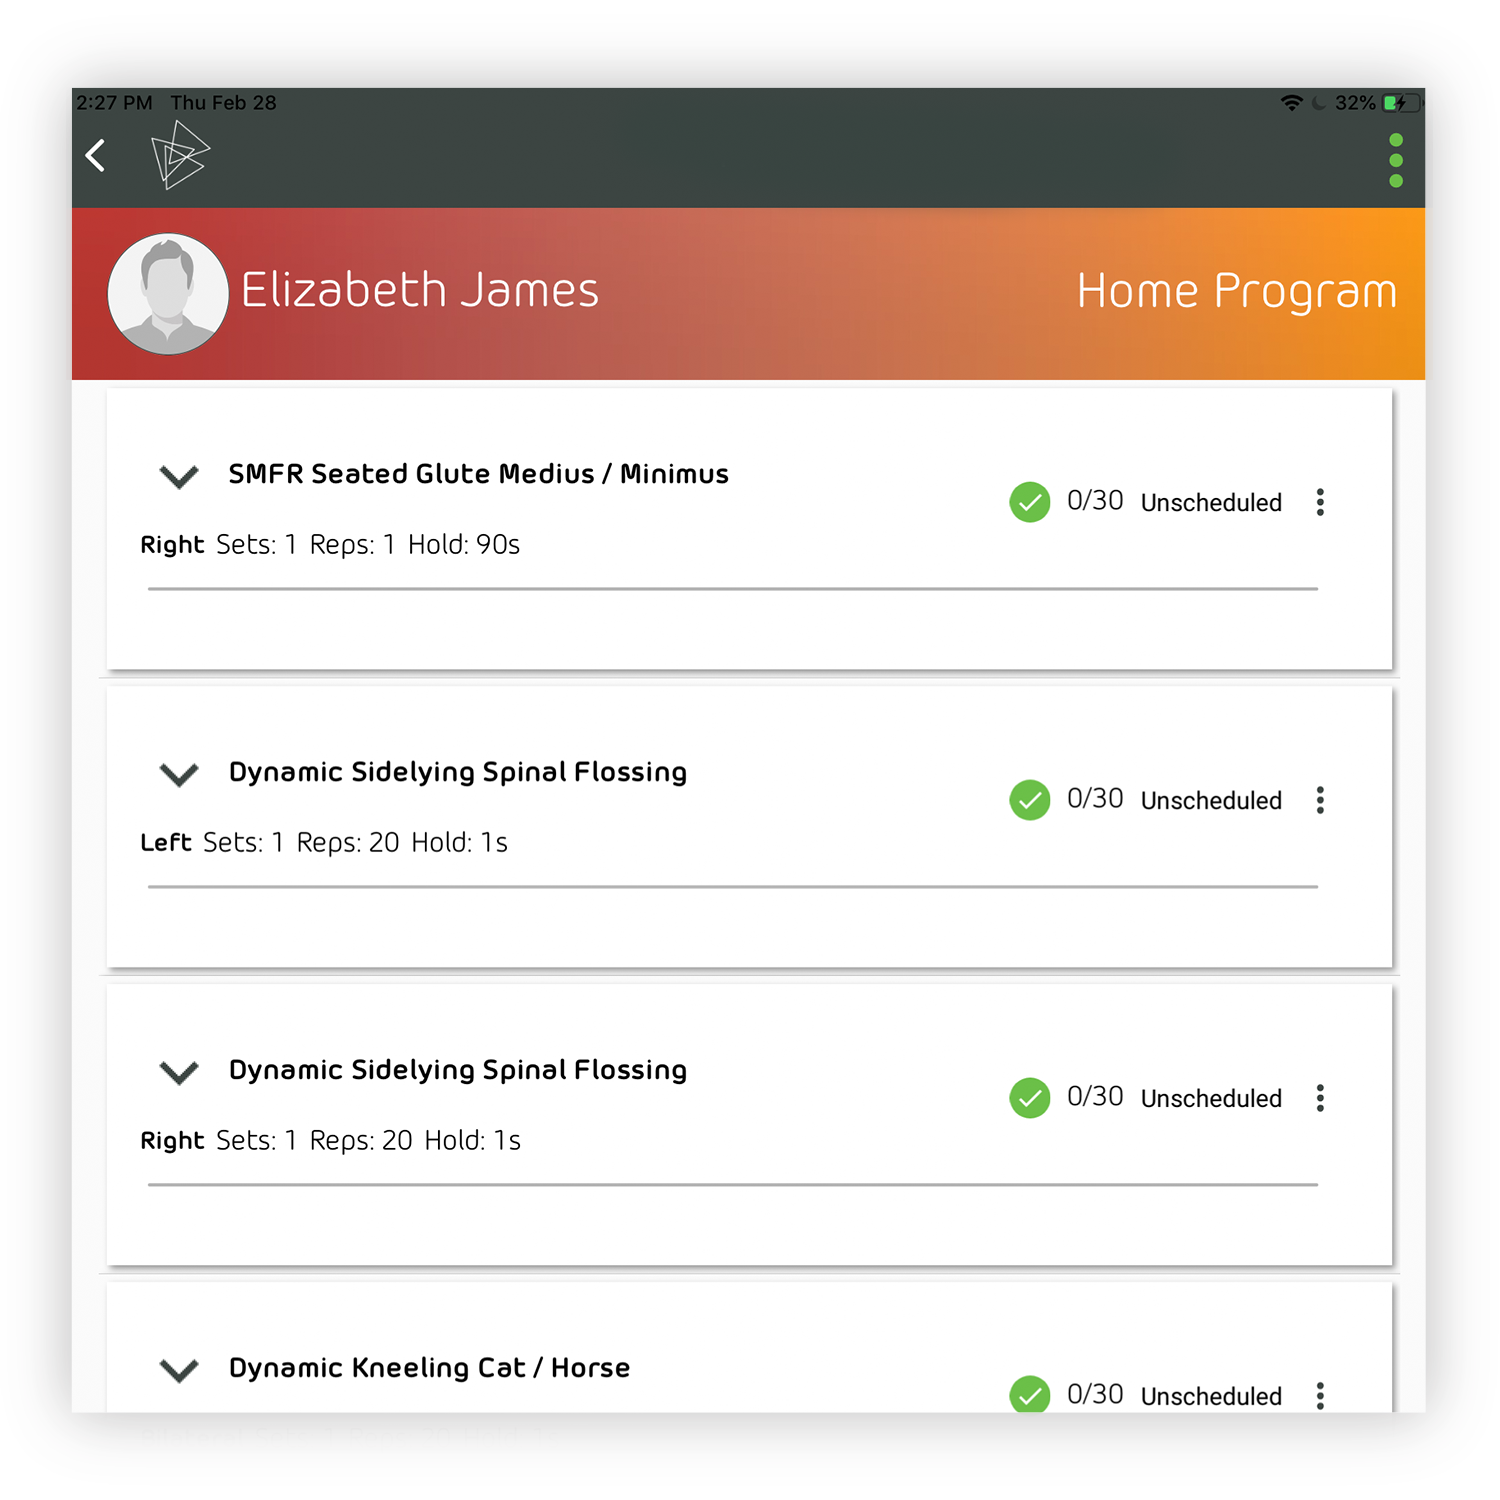 Participant Access - Participants can access their programs, check-in, and view video tutorials to feel confident executing programs on their own—all inside the Kinesics App Participant Portal.